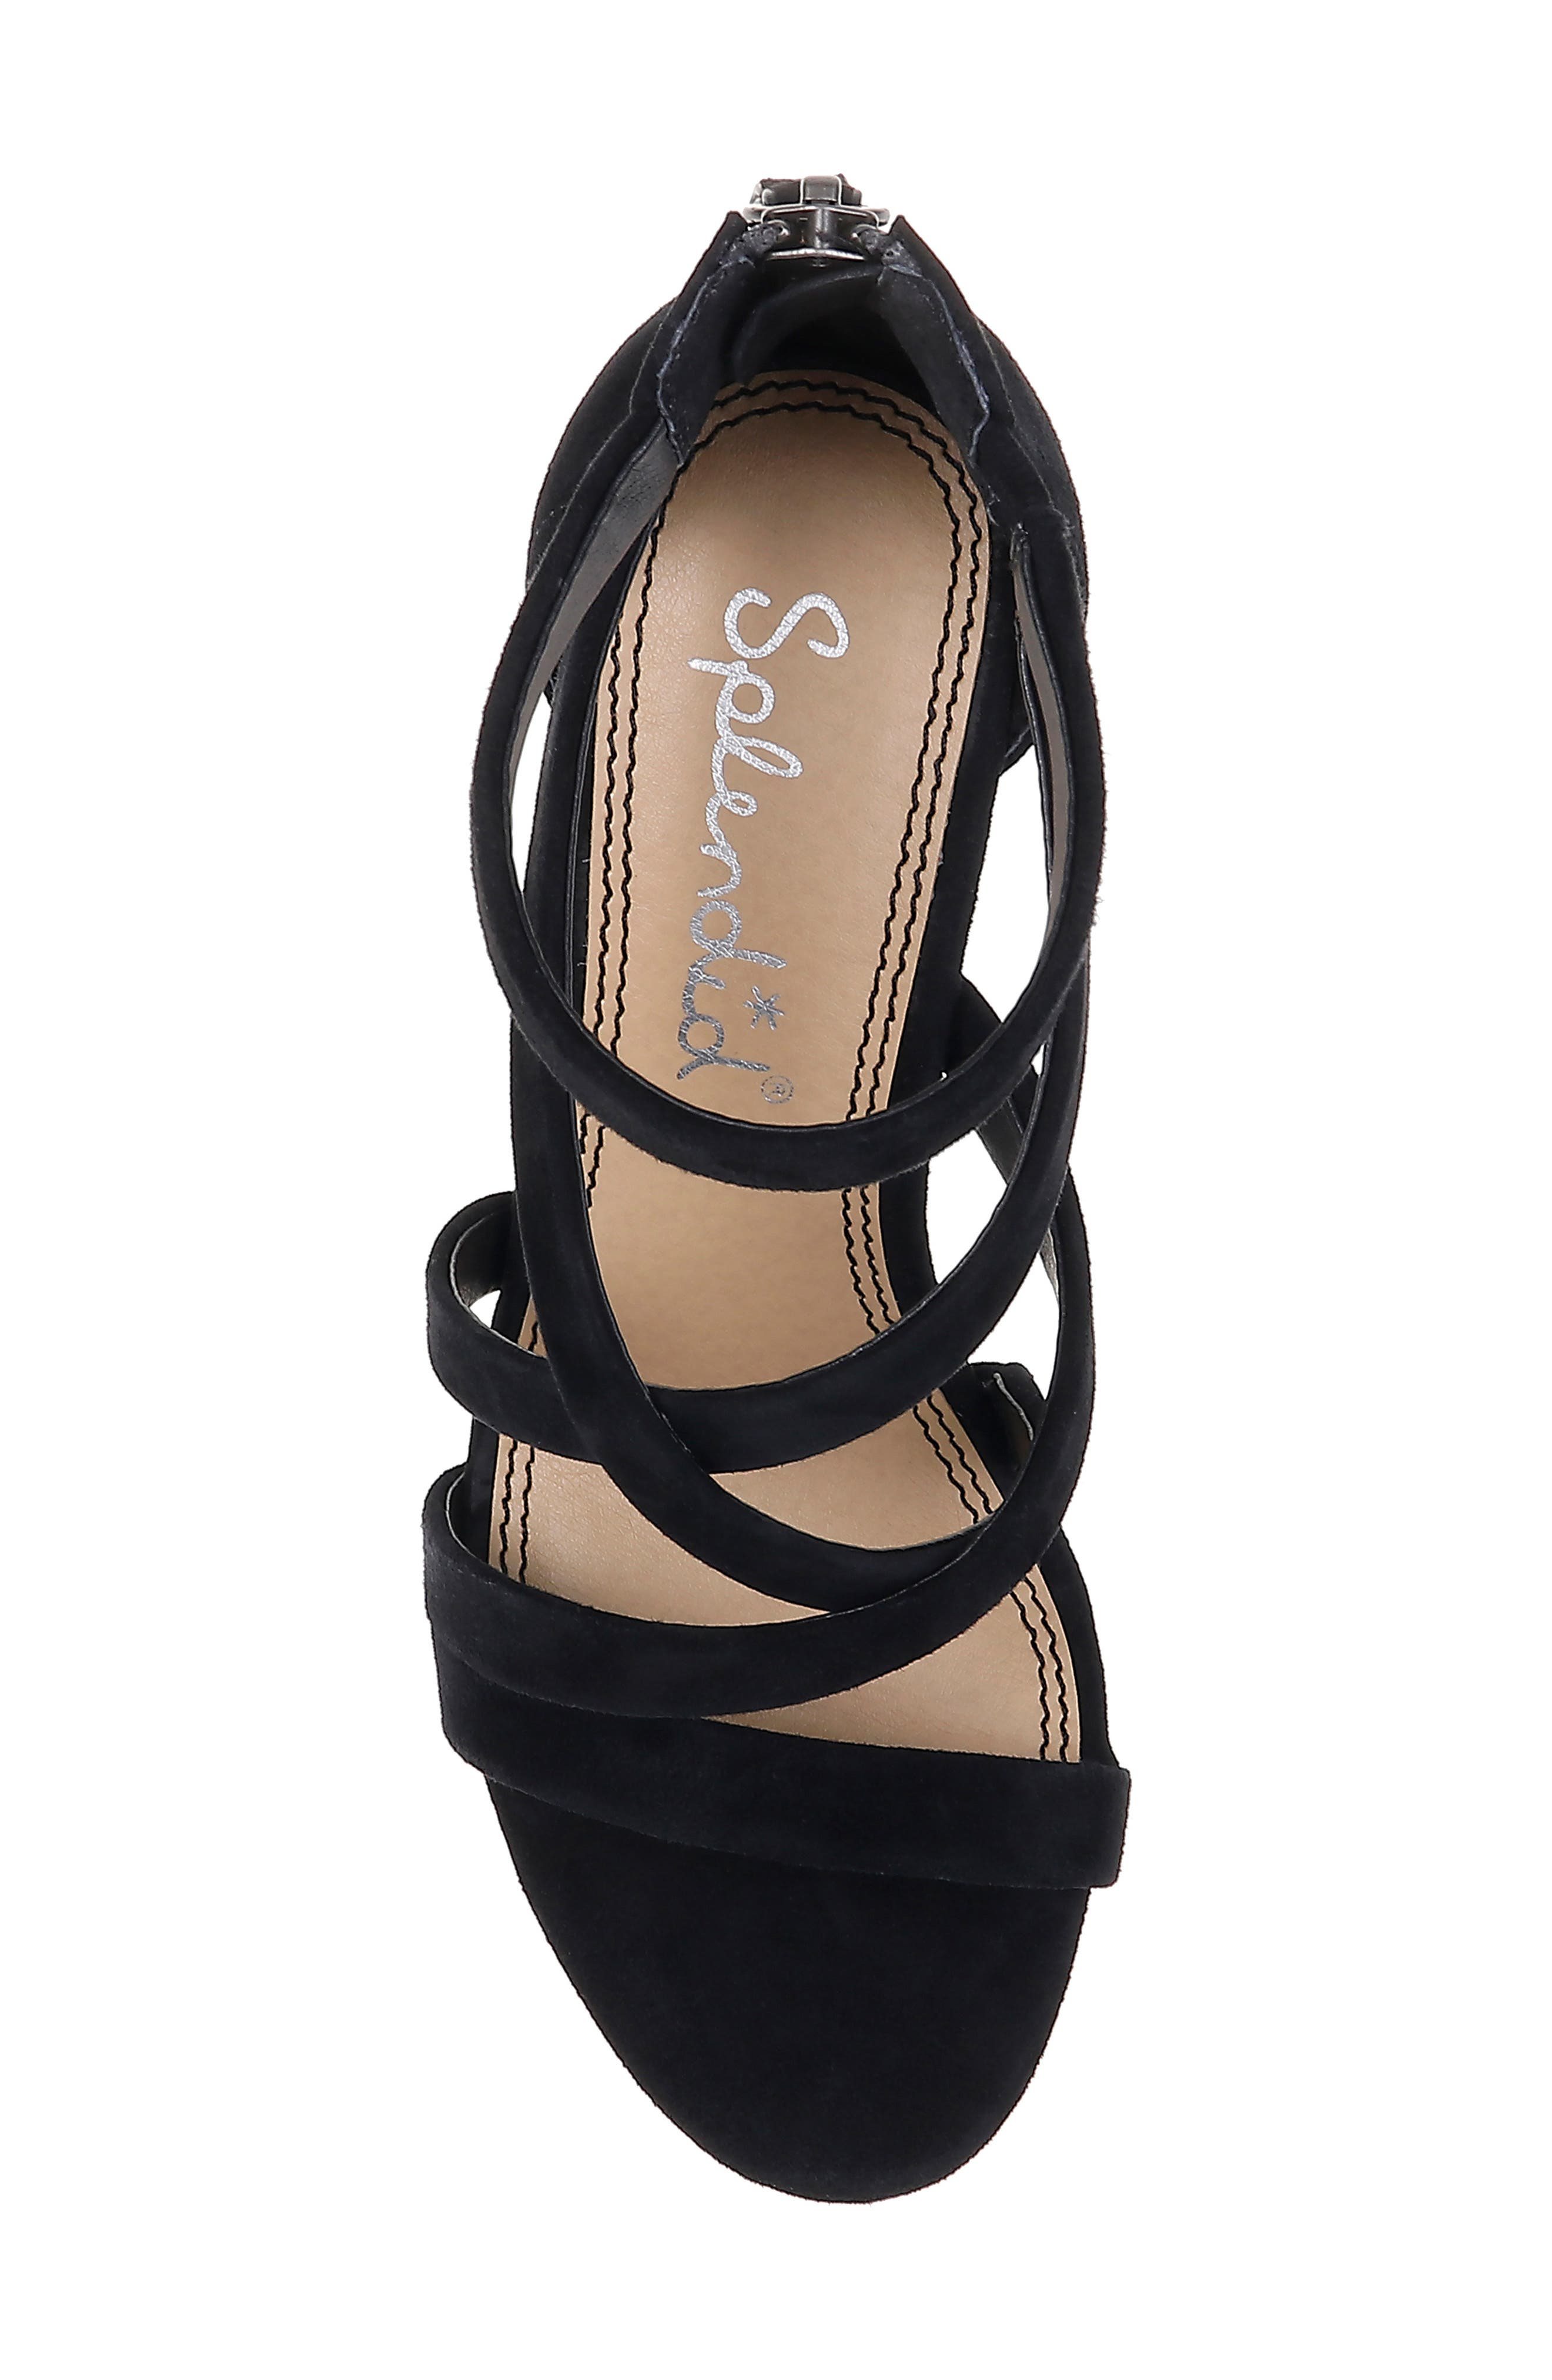 Stuart Block Heel Sandal,                             Alternate thumbnail 5, color,                             BLACK SUEDE